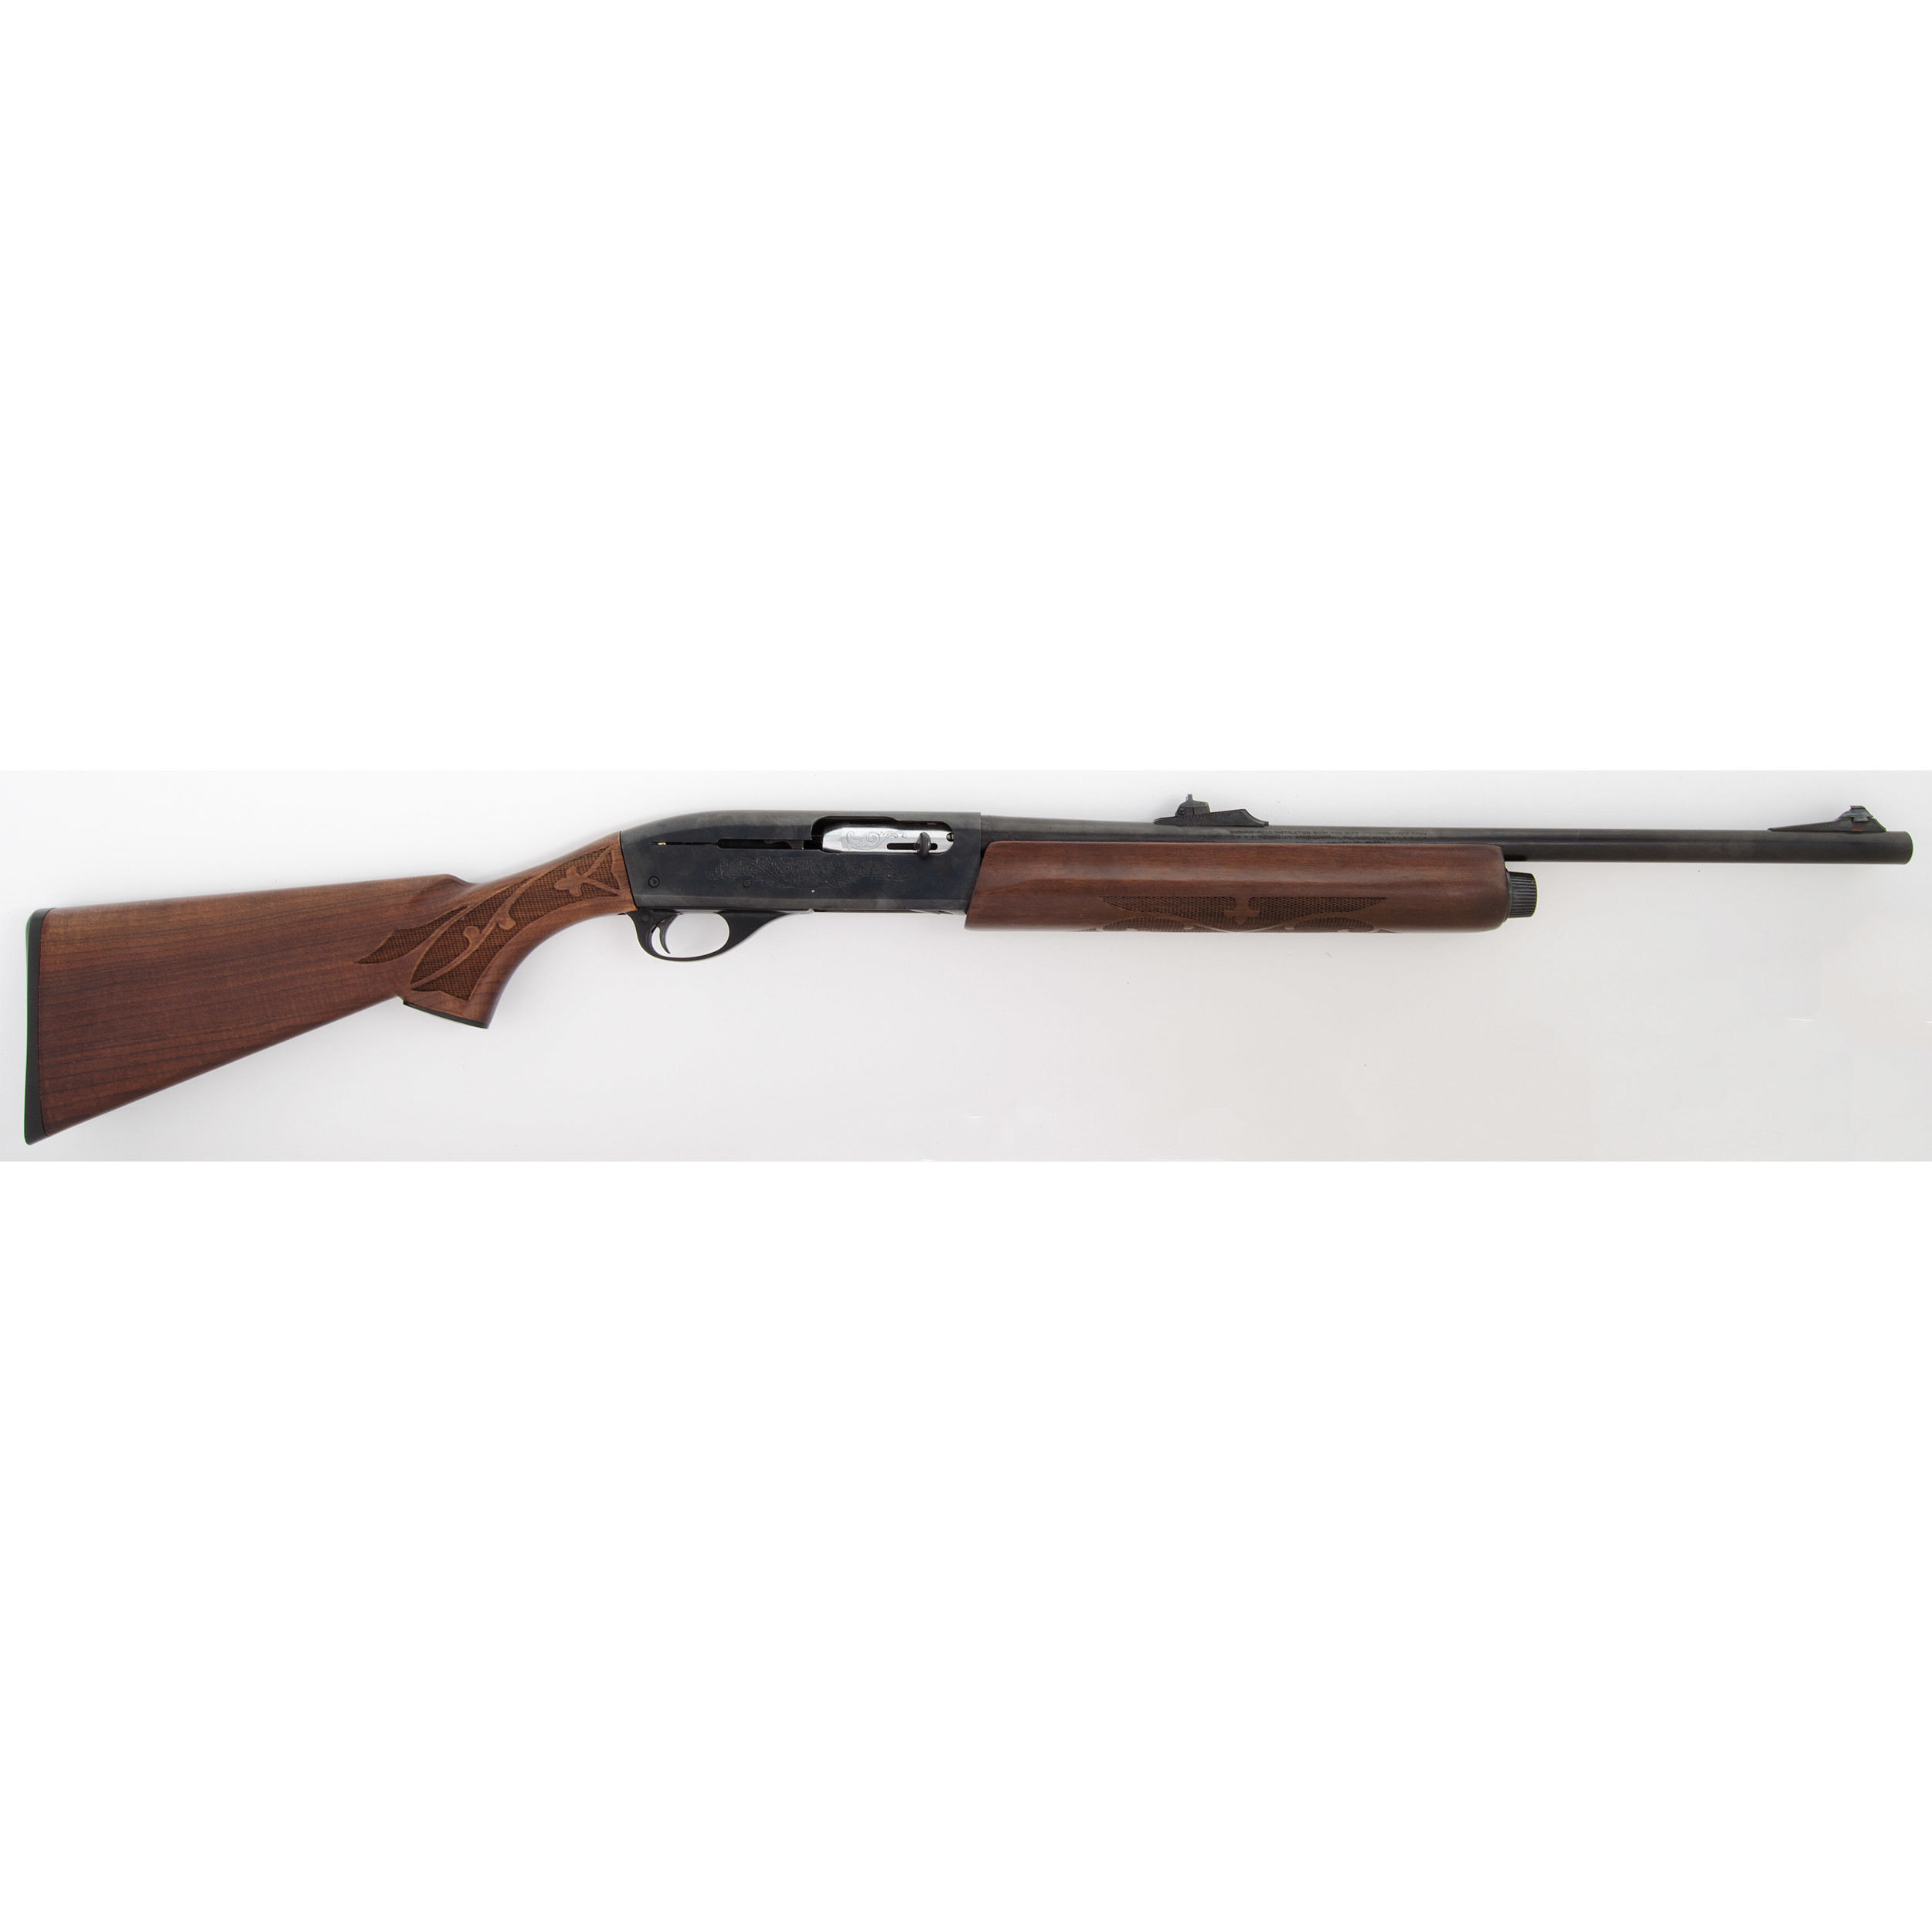 Remington 1100 LT-20 Semi-Automatic Shotgun | Cowan's